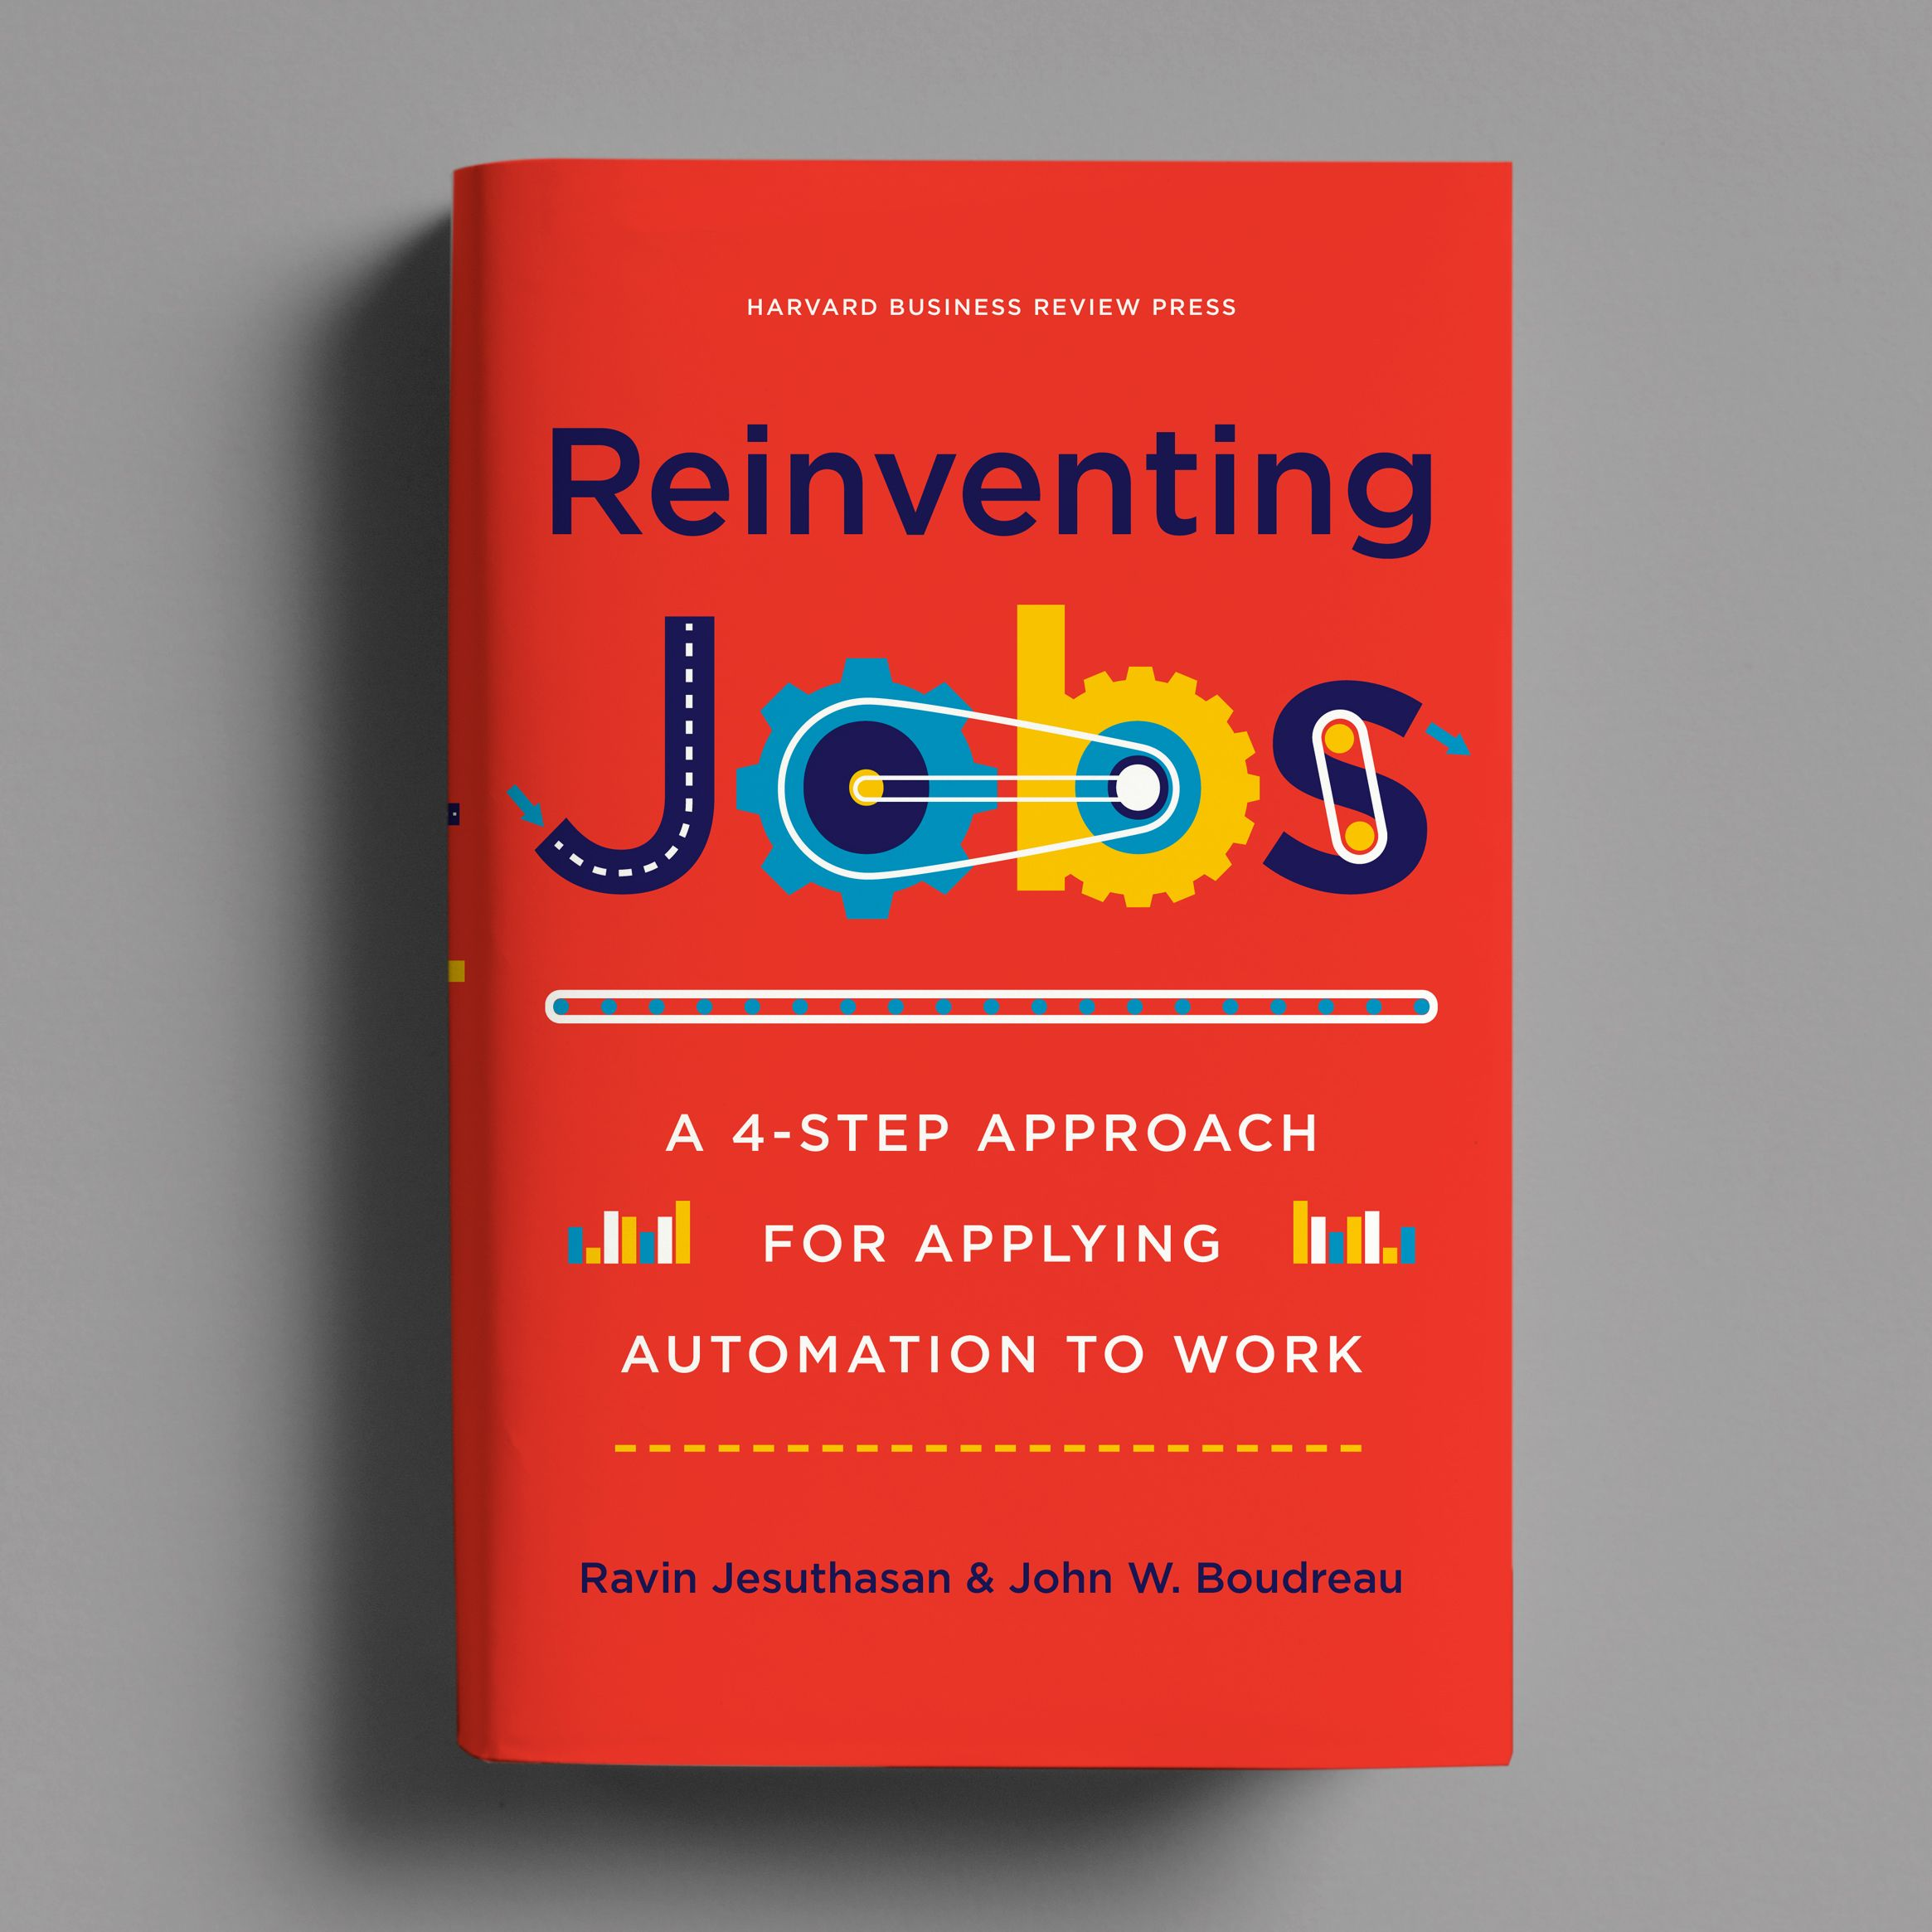 Reinventing Jobs Cover By Casalino Design Inc Harvard Business